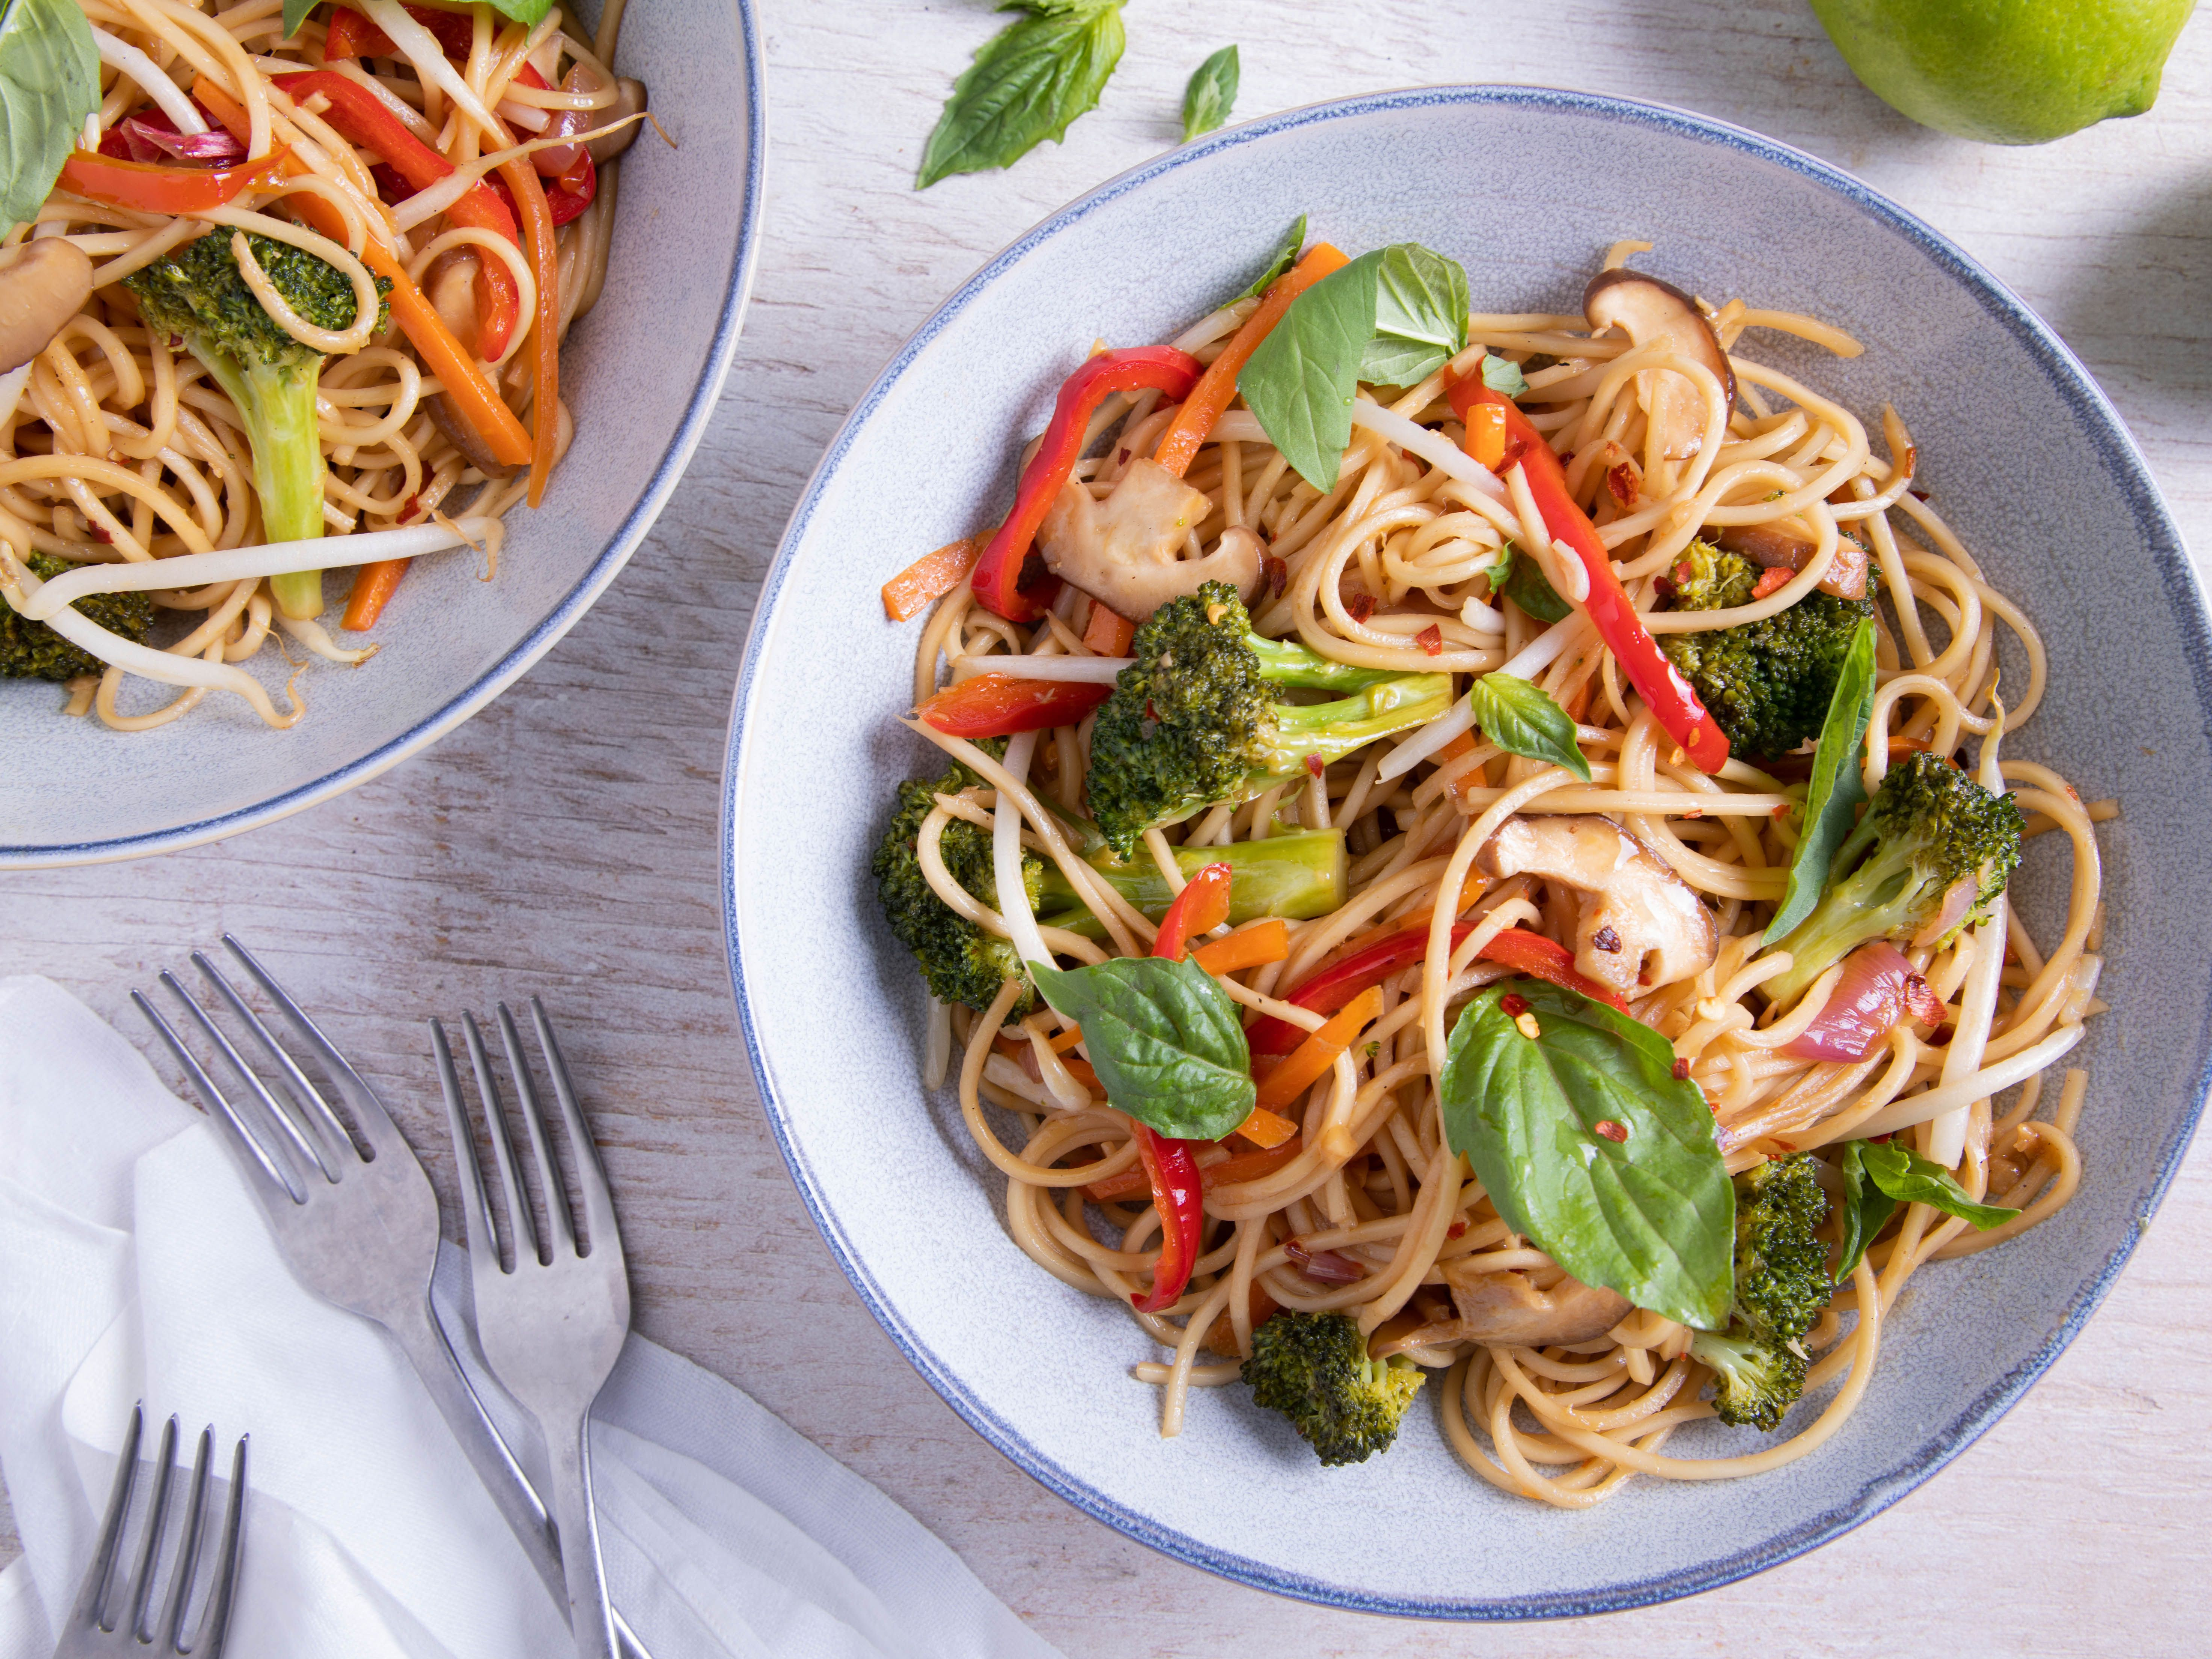 Thai Stir Fried Noodles With Vegetables Recipe